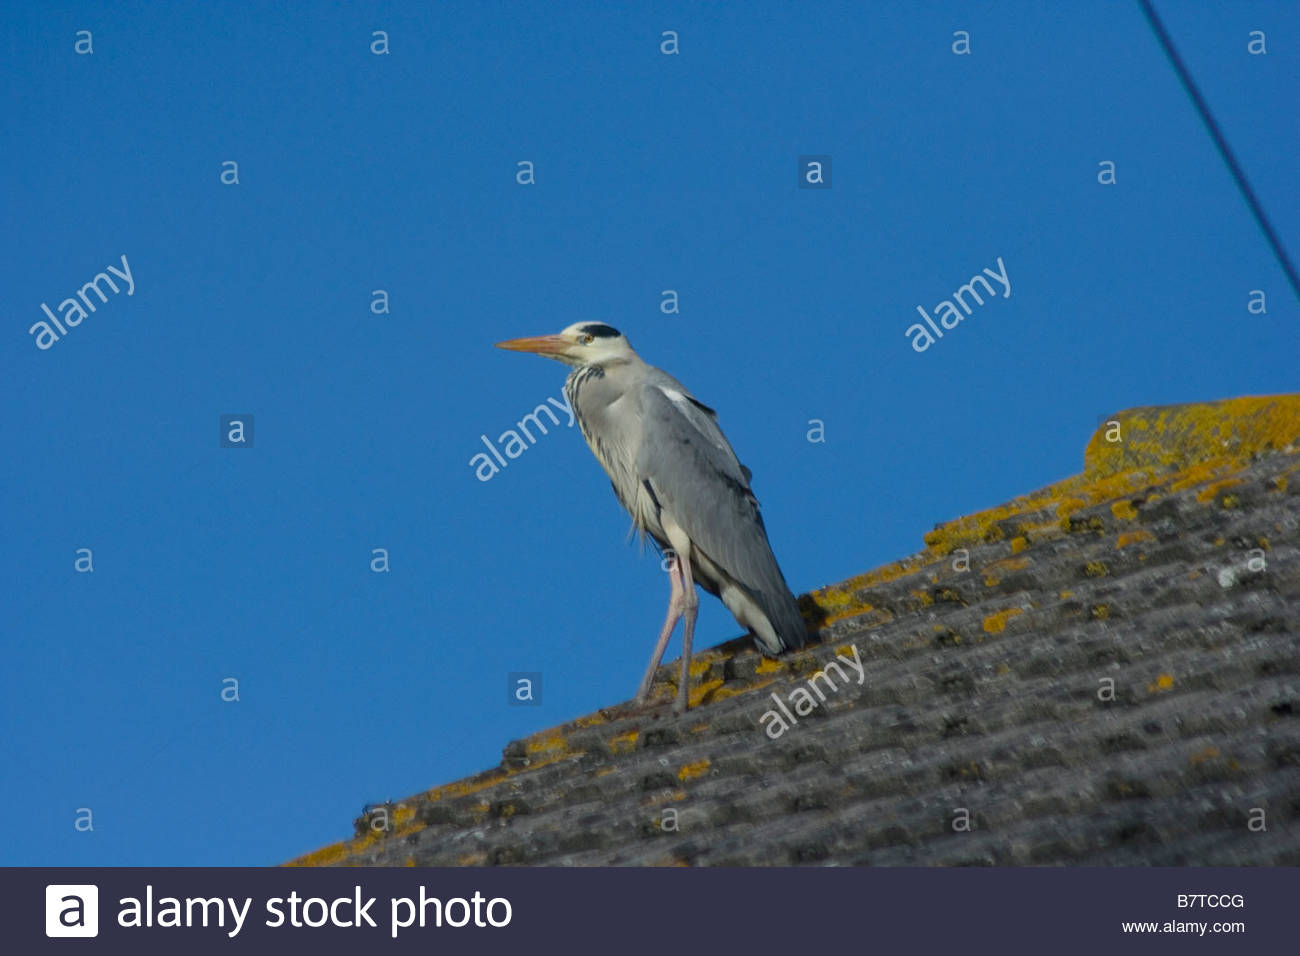 Wild Grey Heron in Urban Environment on House Roof Hampshire England - Stock Image